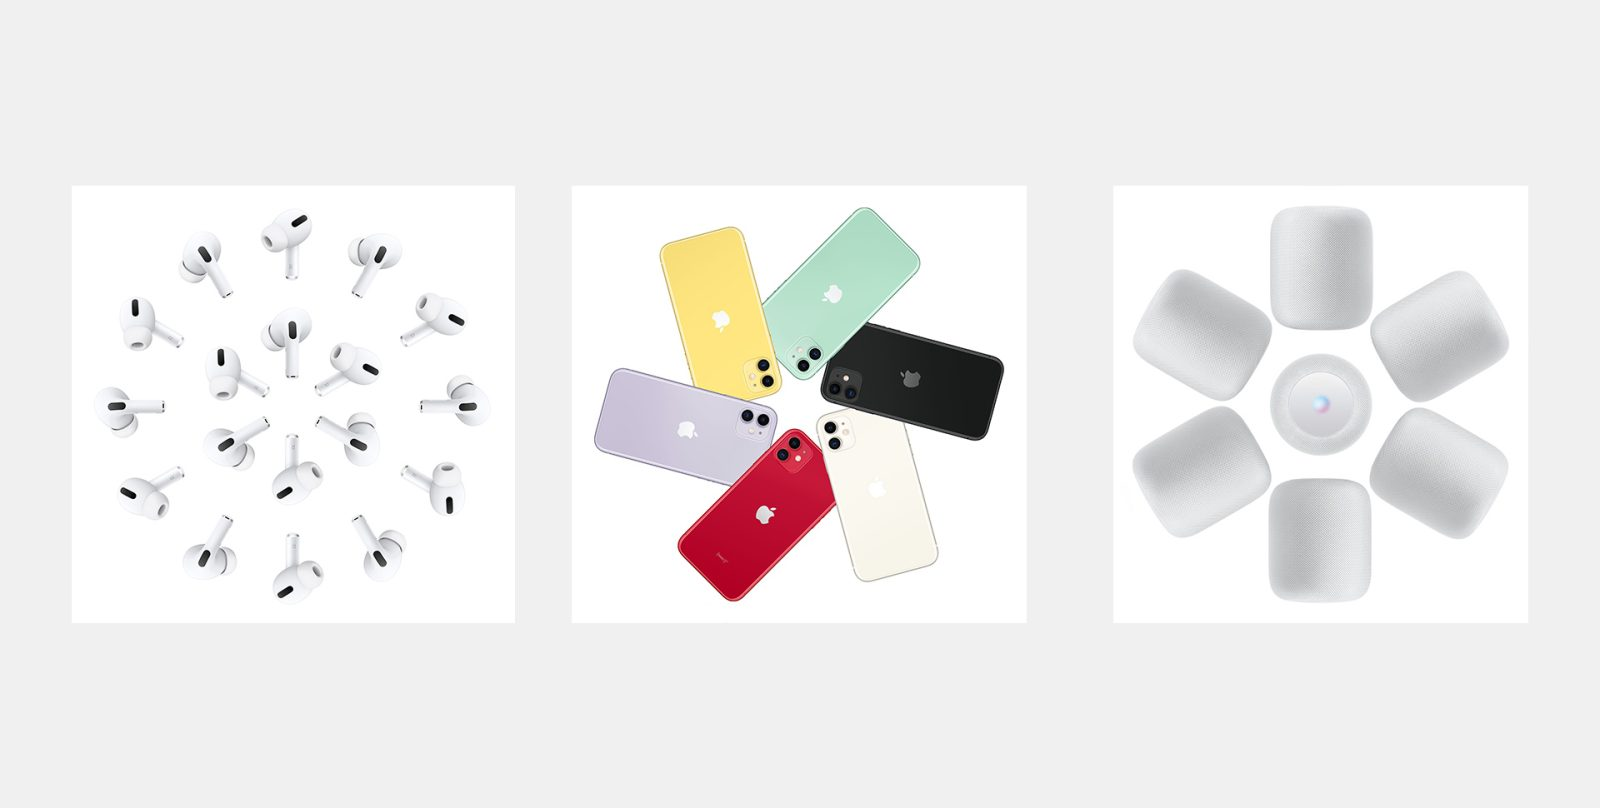 Get the most out of your new iPhone, iPad, or Mac with these accessories